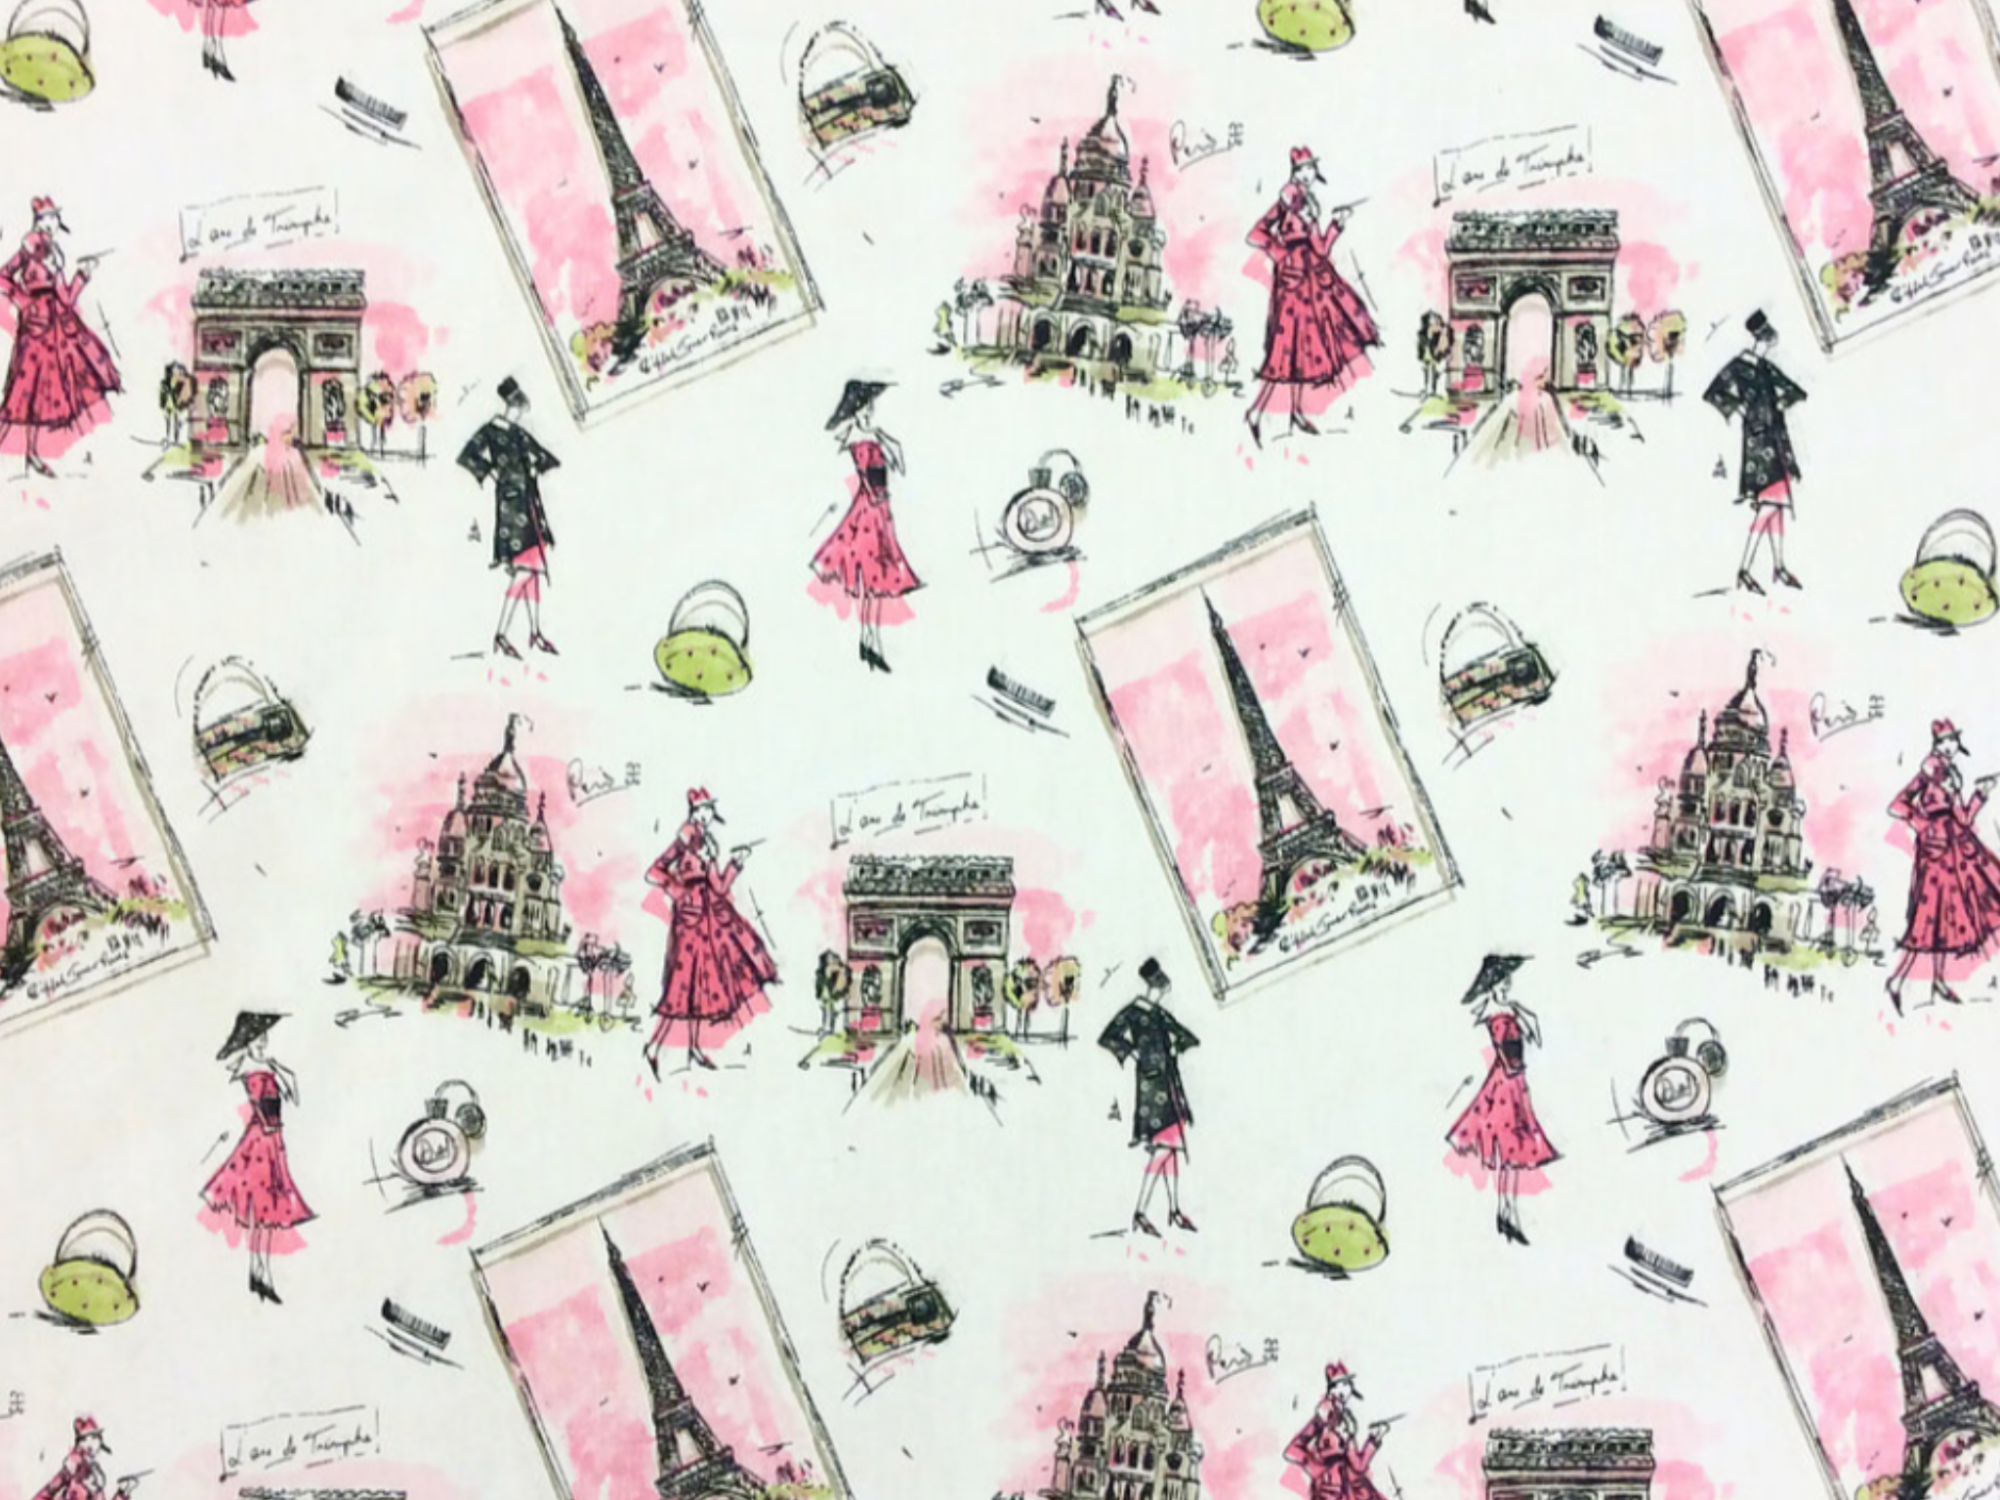 Paris France J'Adore Paris! Retro Fashion Ladies Poodles Eiffel Tower Arc d'Triomphe Drapery Weight Cotton Fabric LC10